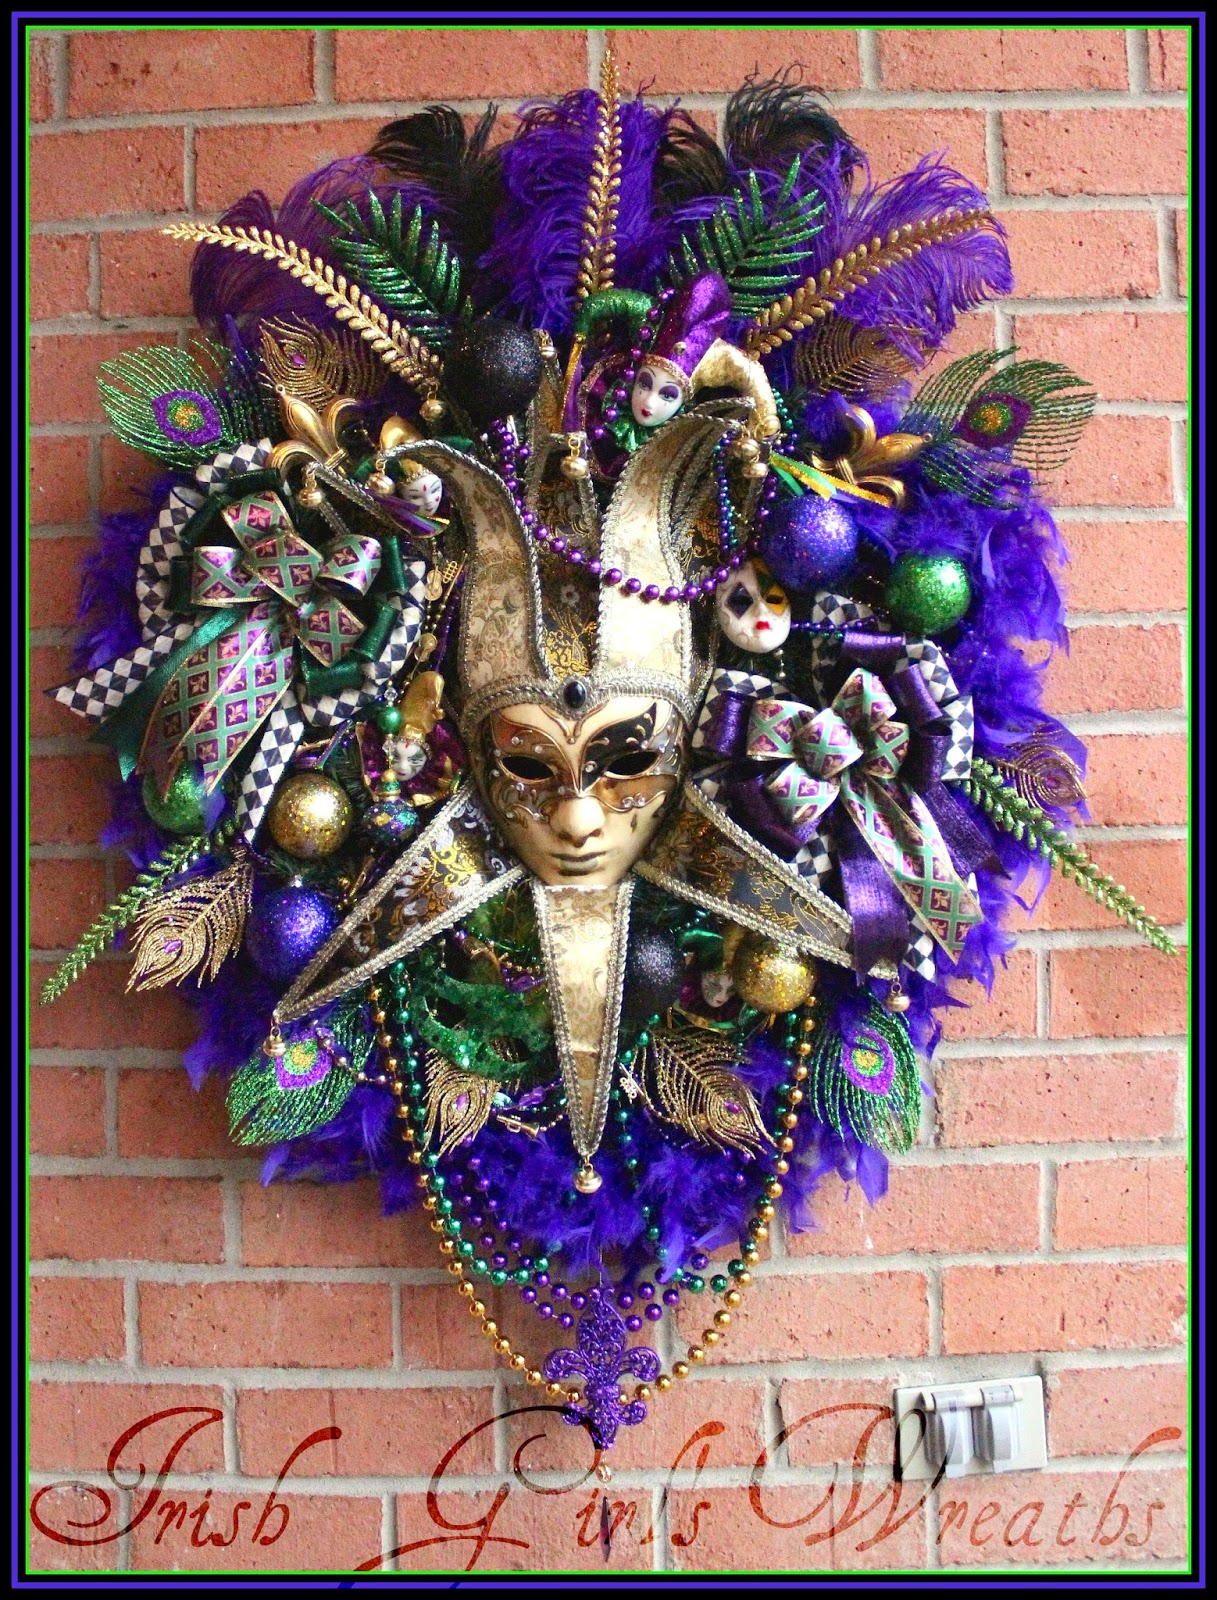 EXTRA Large Black Purple Green Gold Mardi Gras Venetian Jester Mask Wreath, feather boa, ostrich plumes, beads, HUGE, masquerade, harlequin